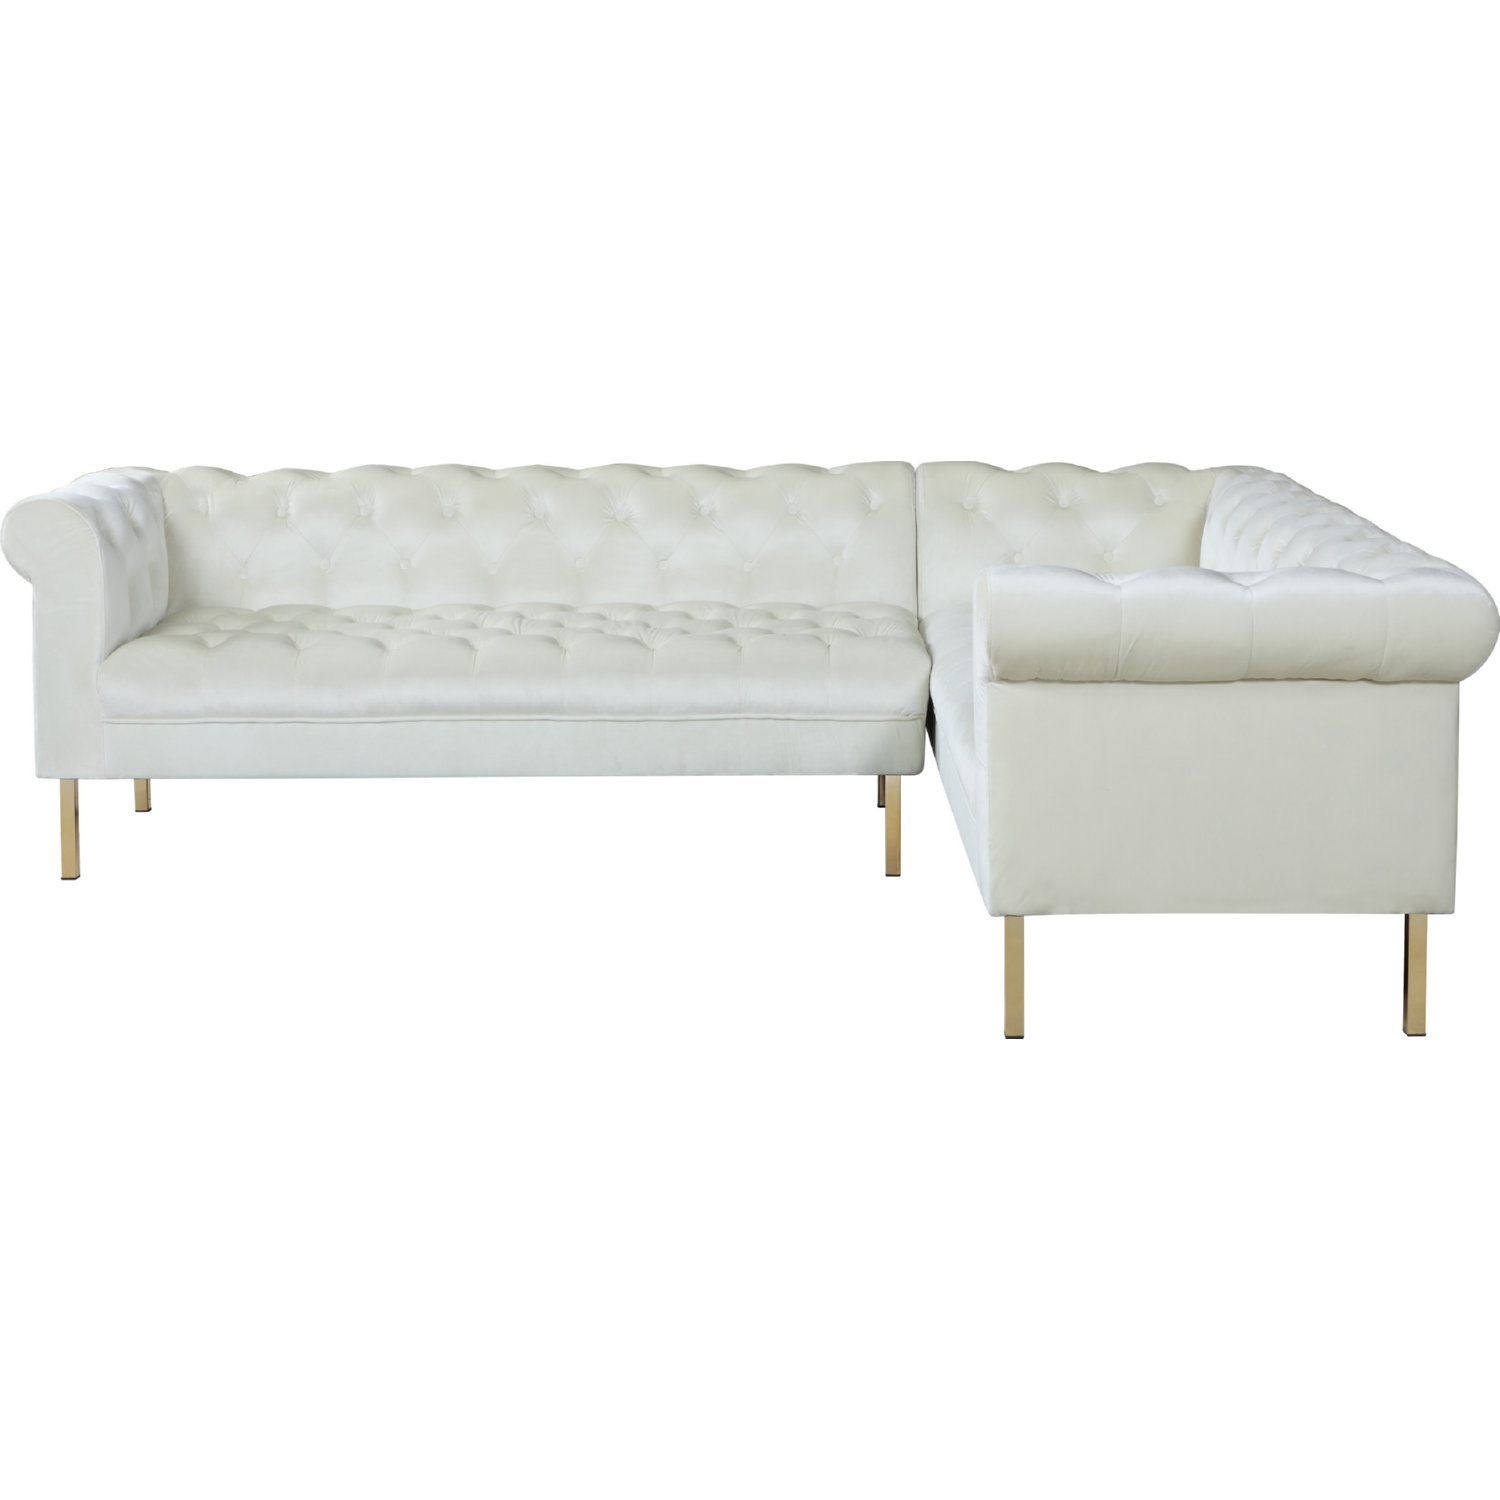 Chic Iconic Fsa9206 Dr Giovanni Right Sectional Sofa In Tufted Beige Velvet On Gold Legs